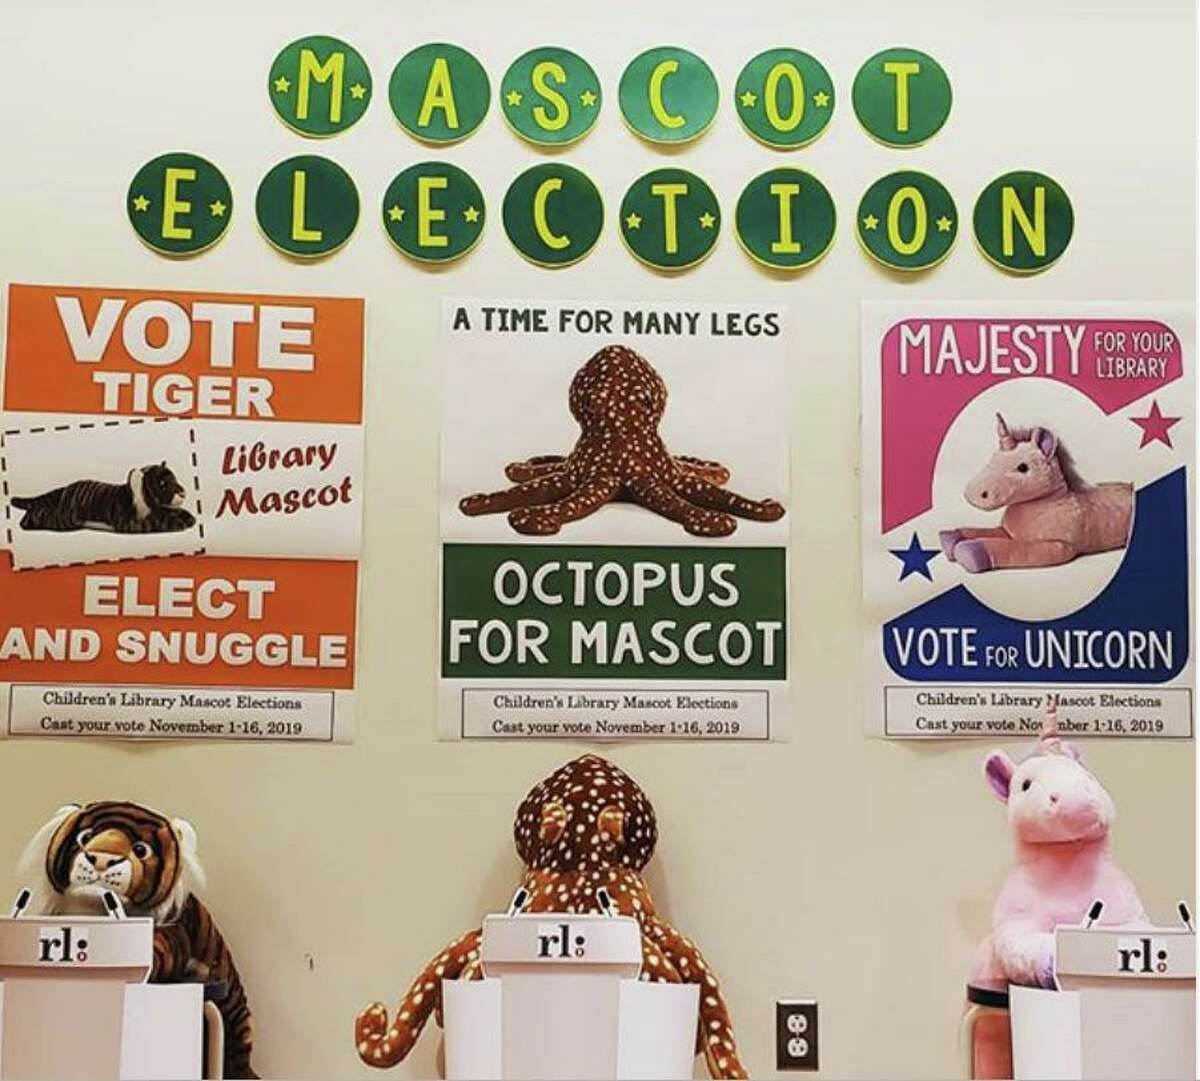 The Mascot Election at Ridgefield Library has three qualified candidates seeks voter approval.